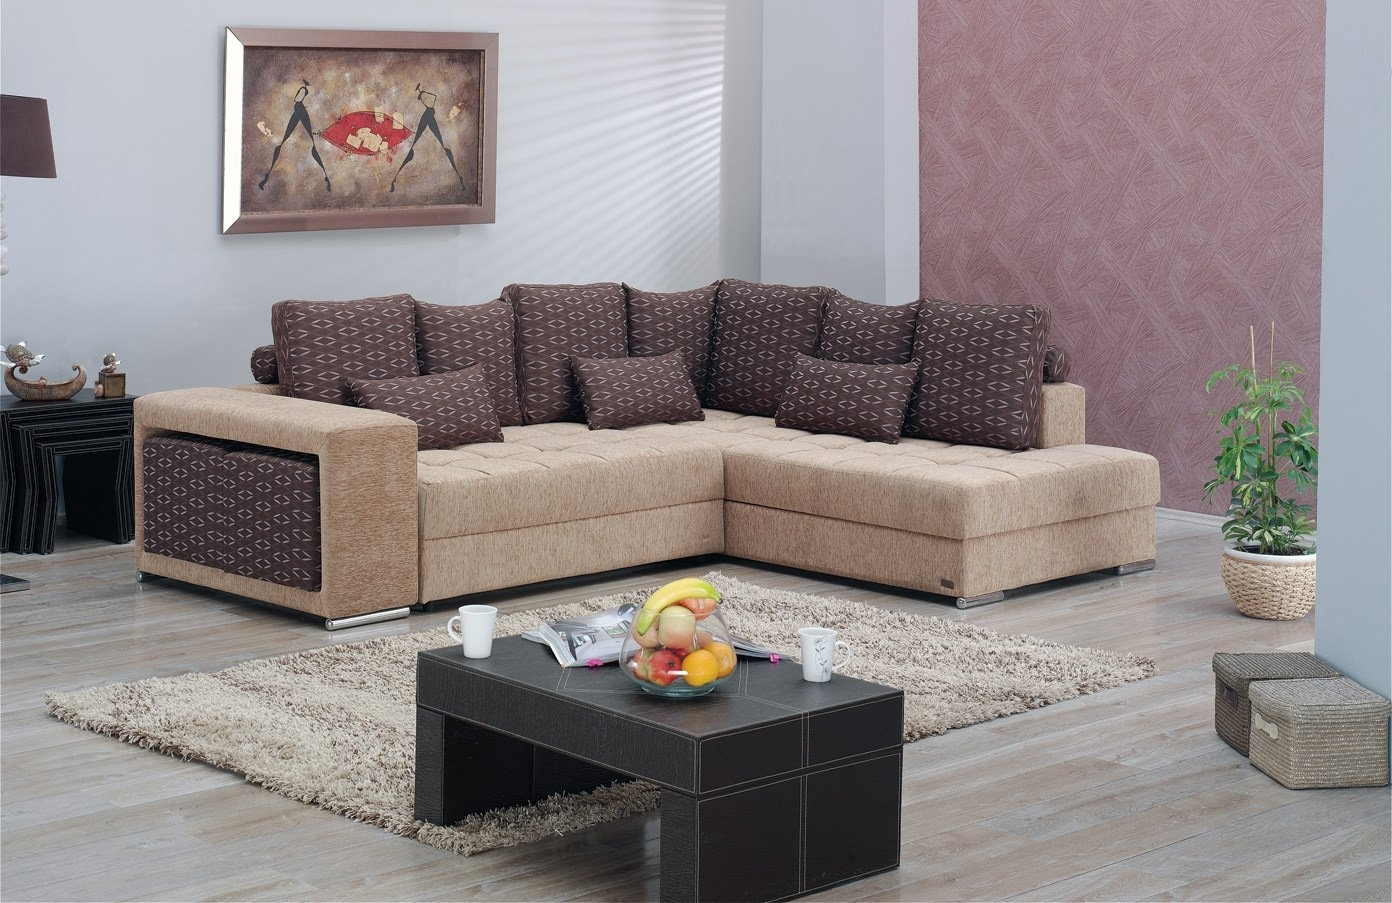 Sectional Sofa Design: Best Sectional Sofas Los Angeles Sofa Stores in Sectional Sofas in Stock (Image 6 of 10)